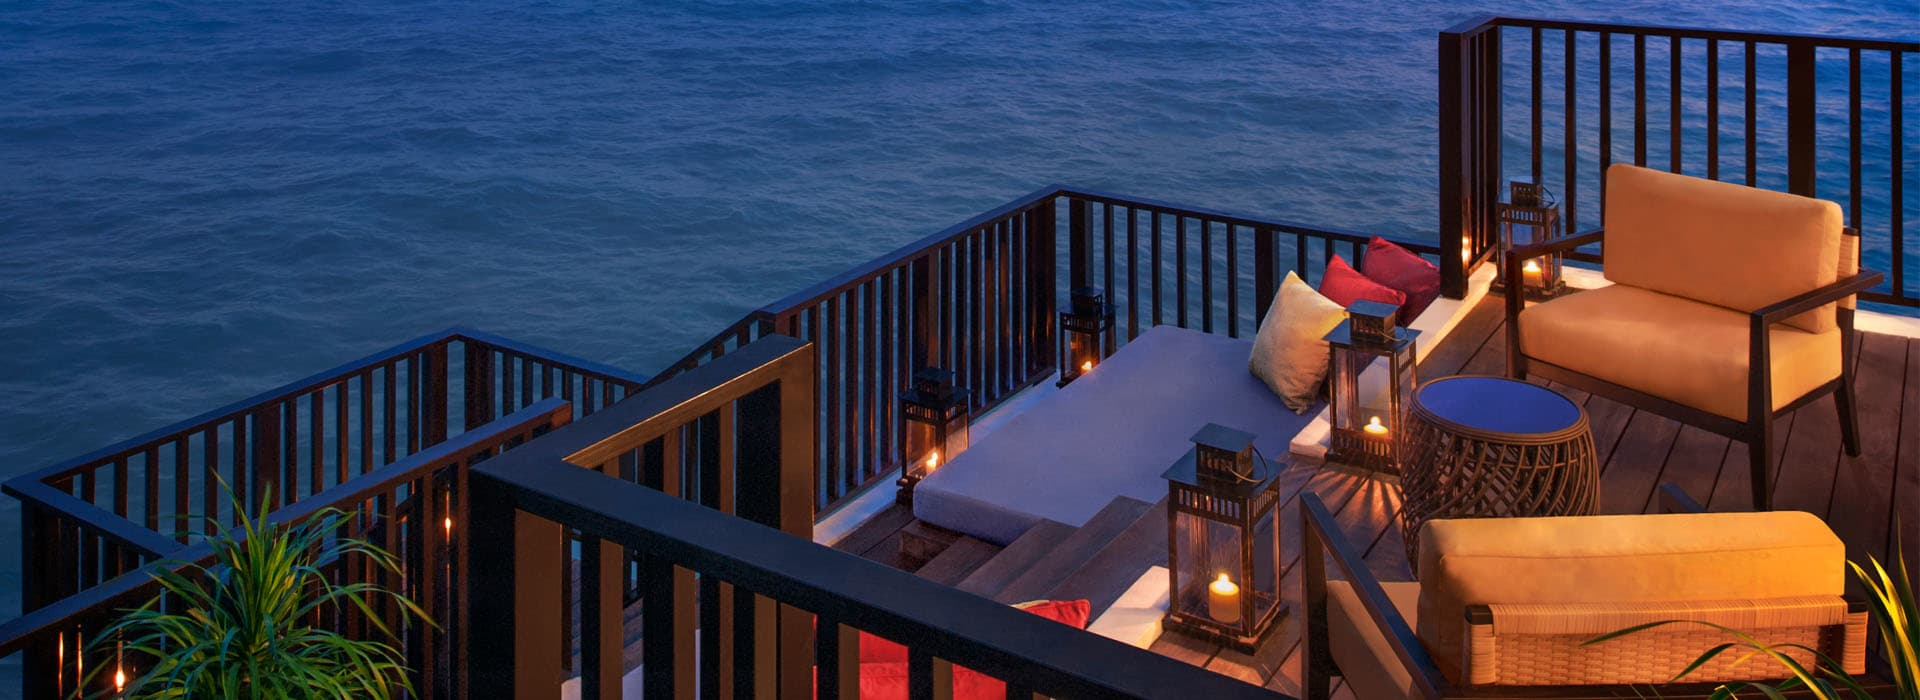 Dining deck at one of the Sepang Hotels Malaysia